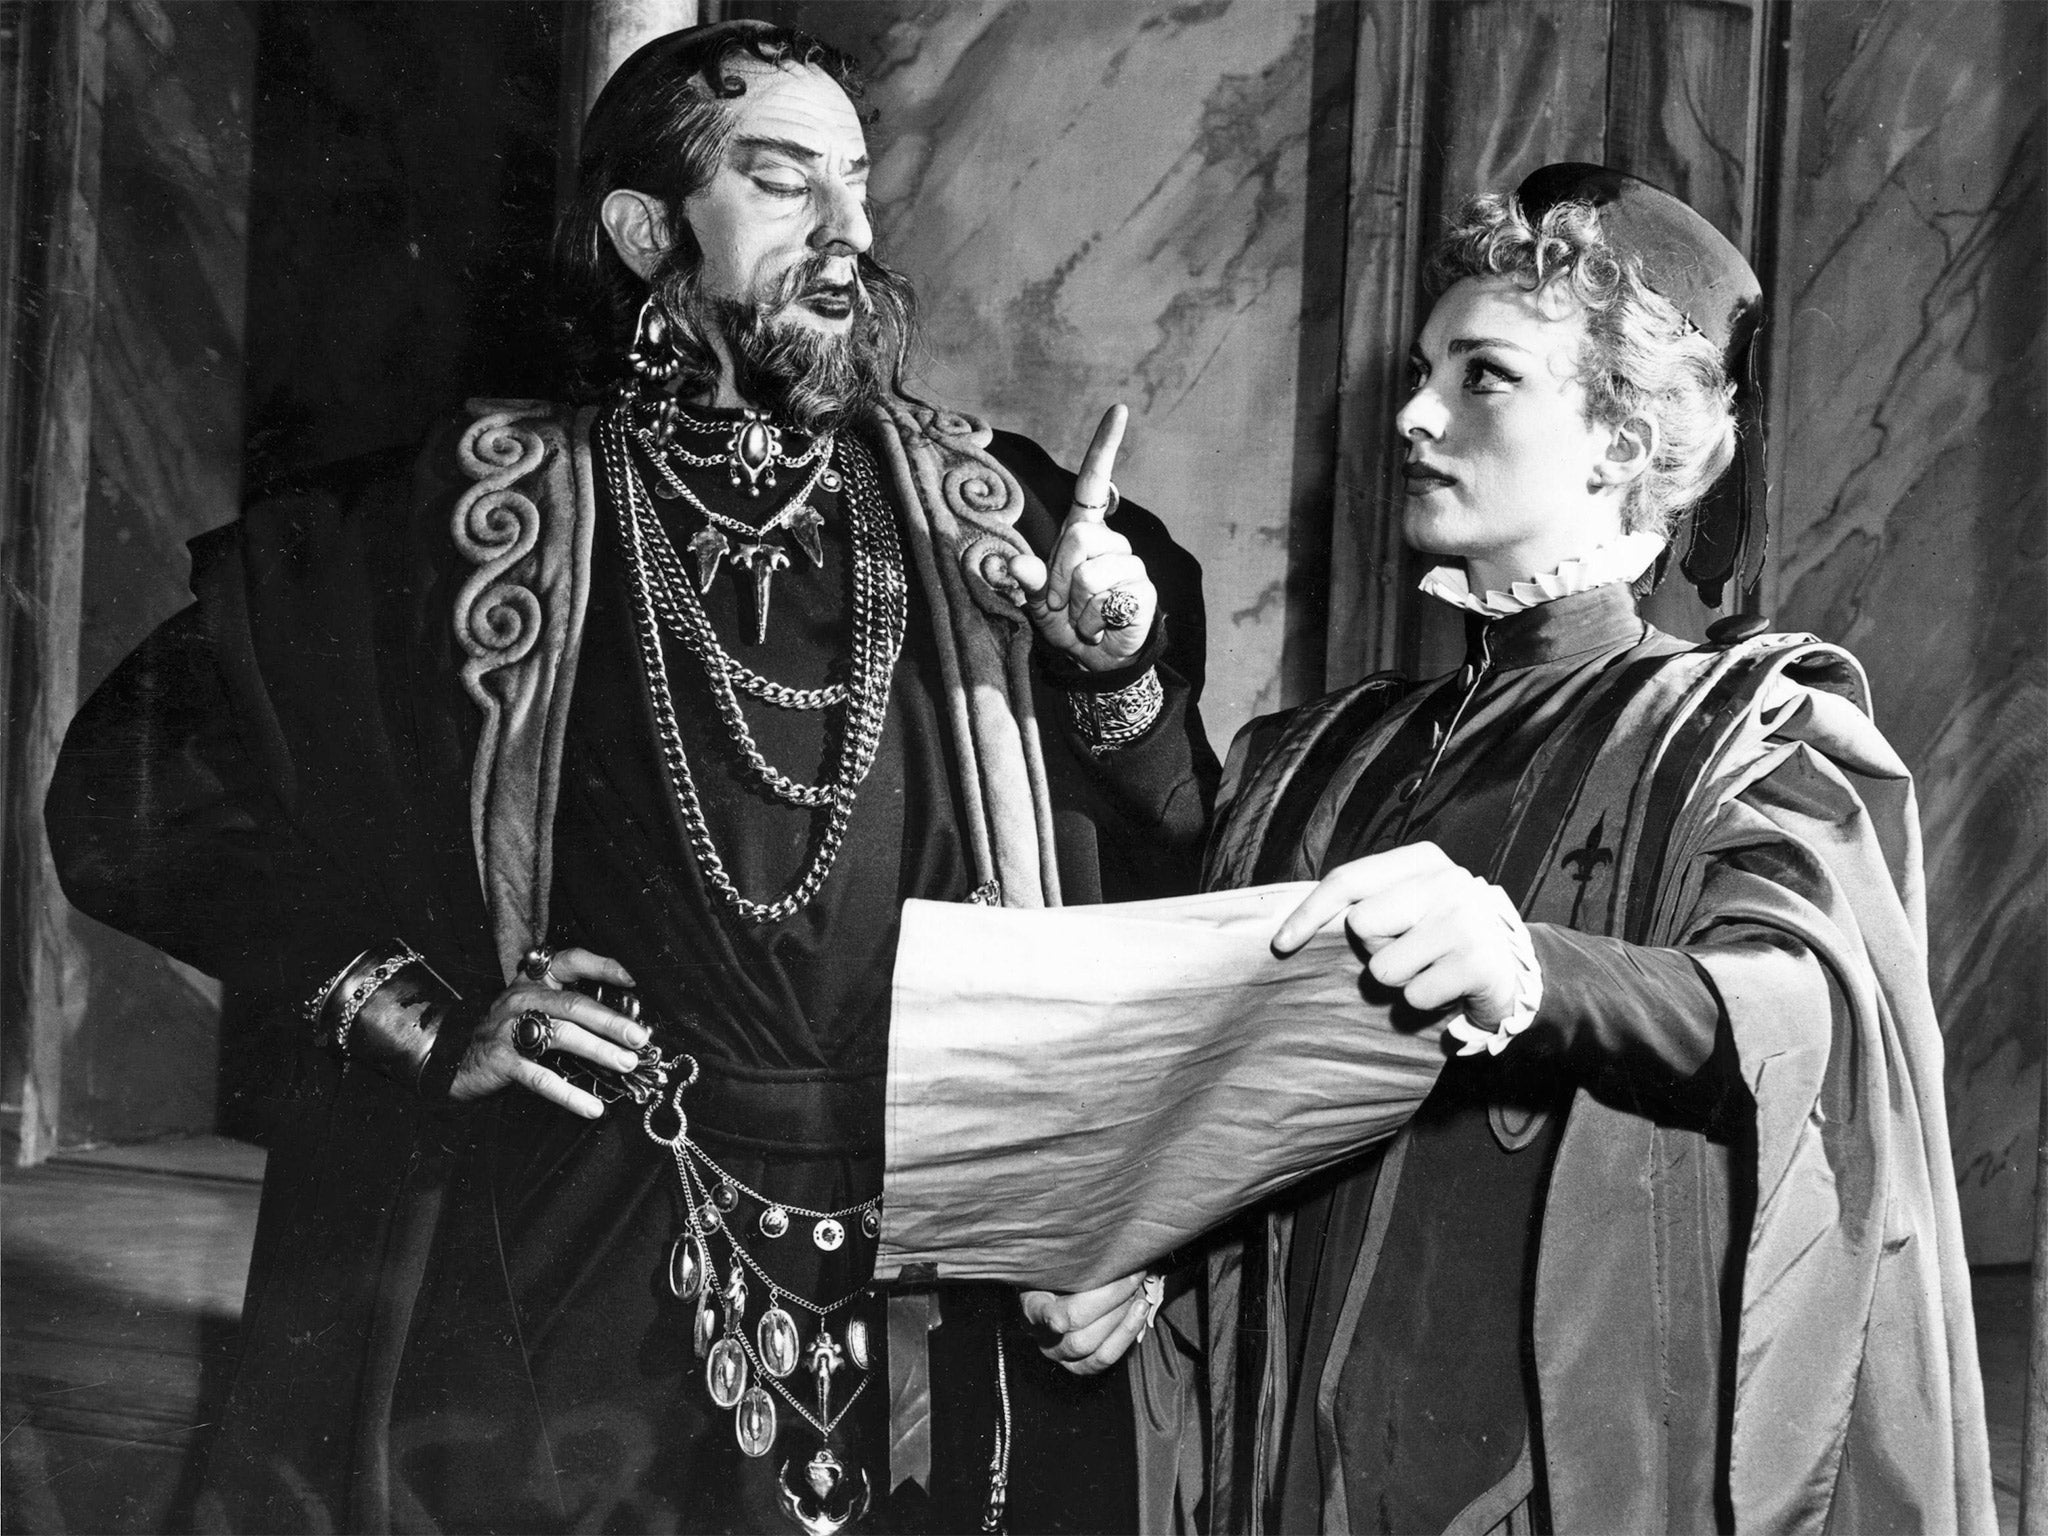 the merchant of venice shakespeare In the merchant of venice, bassanio has some financial troubles his friend borrows money from shylock, a jewish moneylender, but is imprisoned when he can't pay his debt at the end of the play.